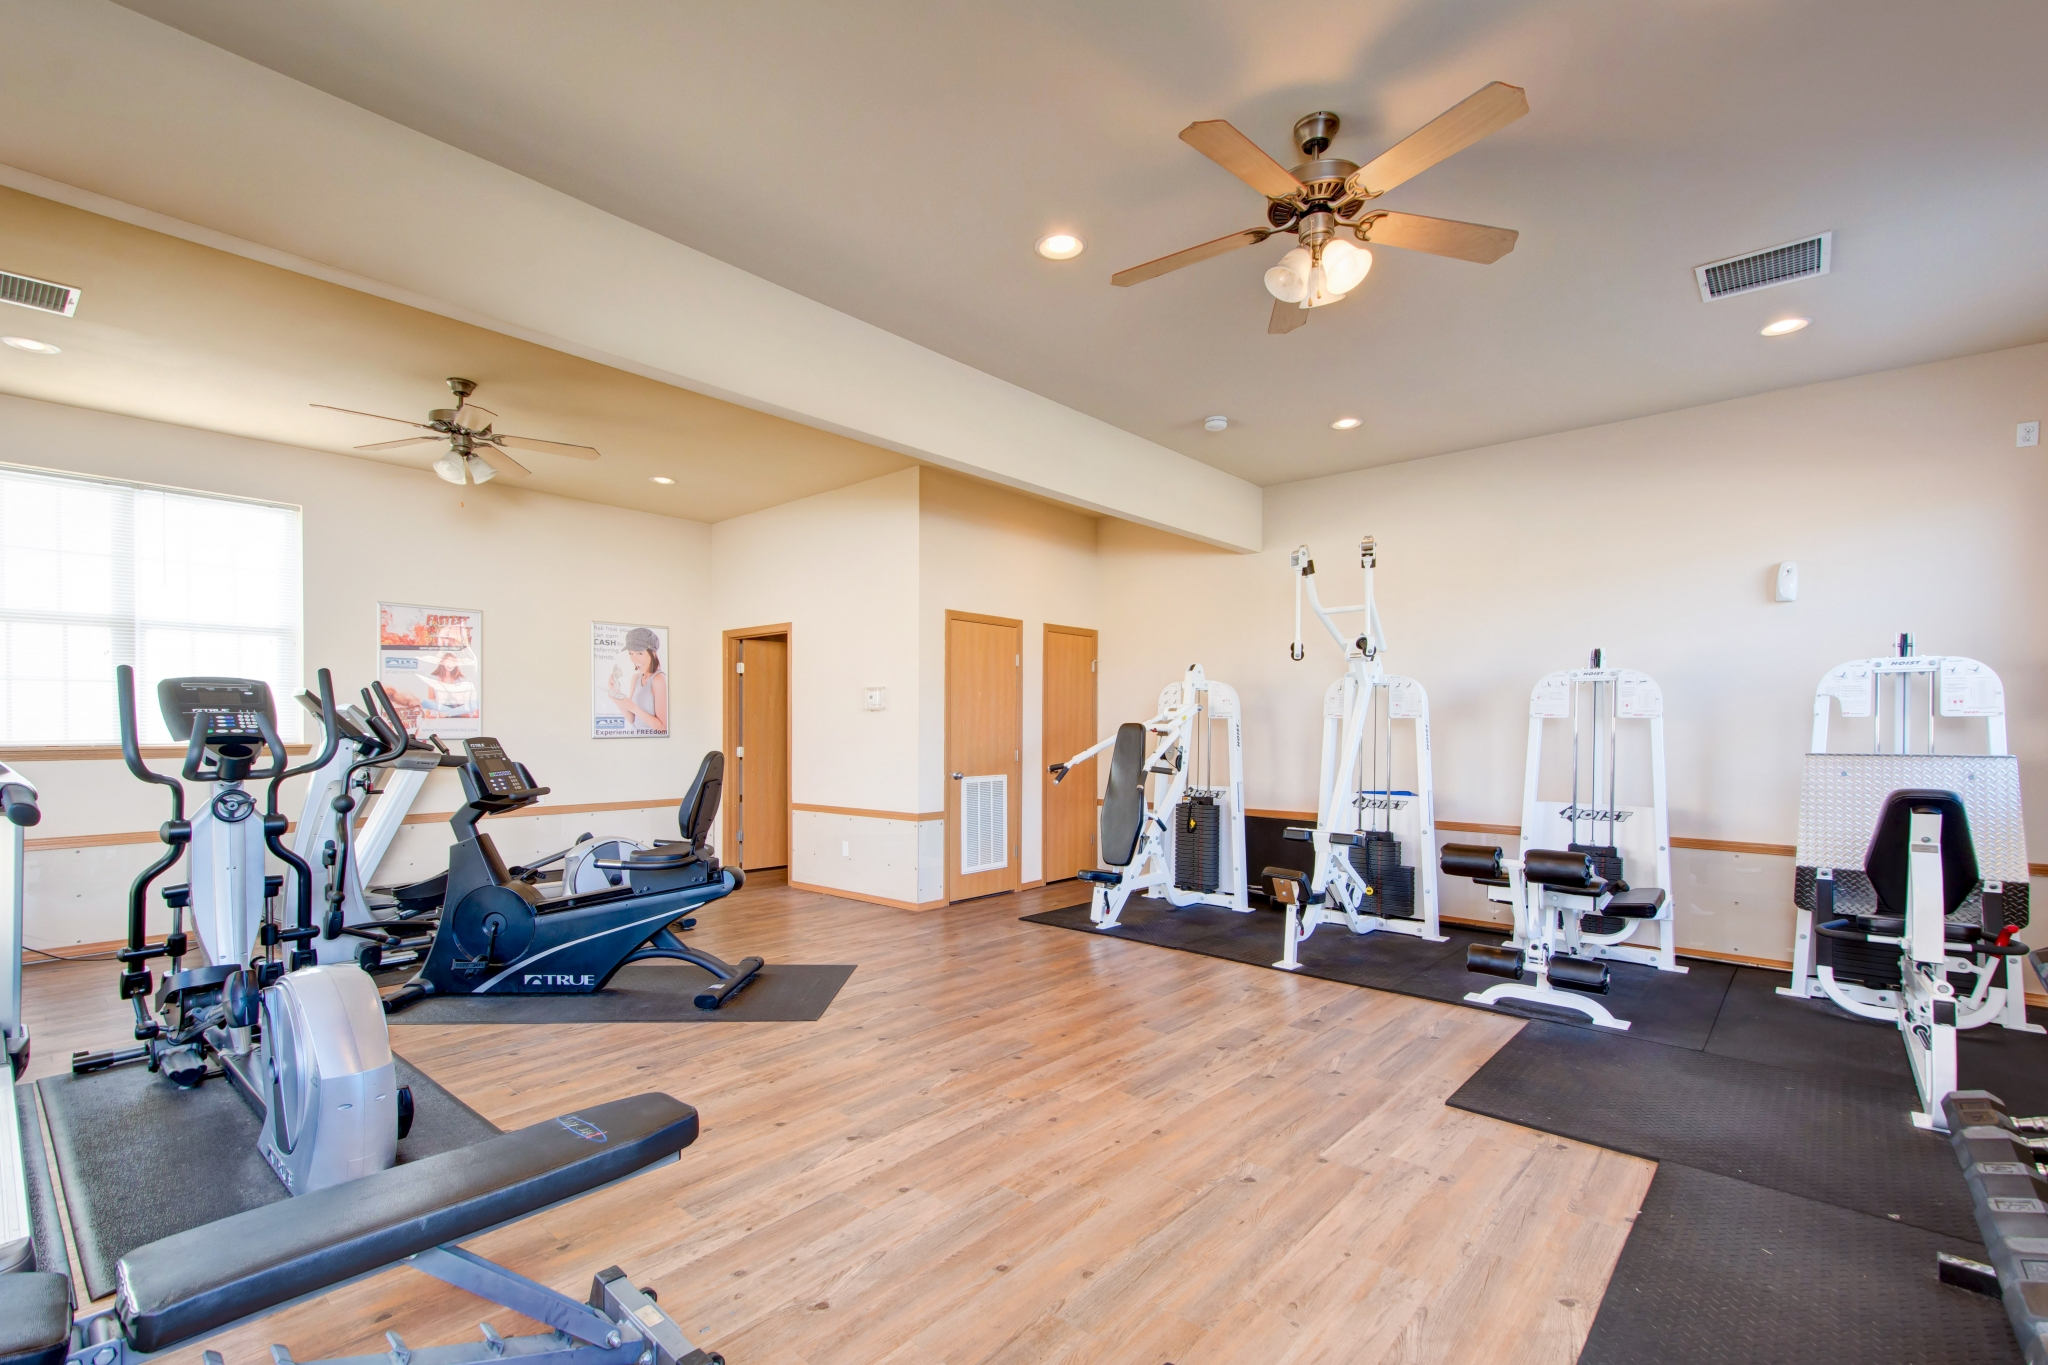 Cambridge Park Apartments amenity fitness facility with workout equipment